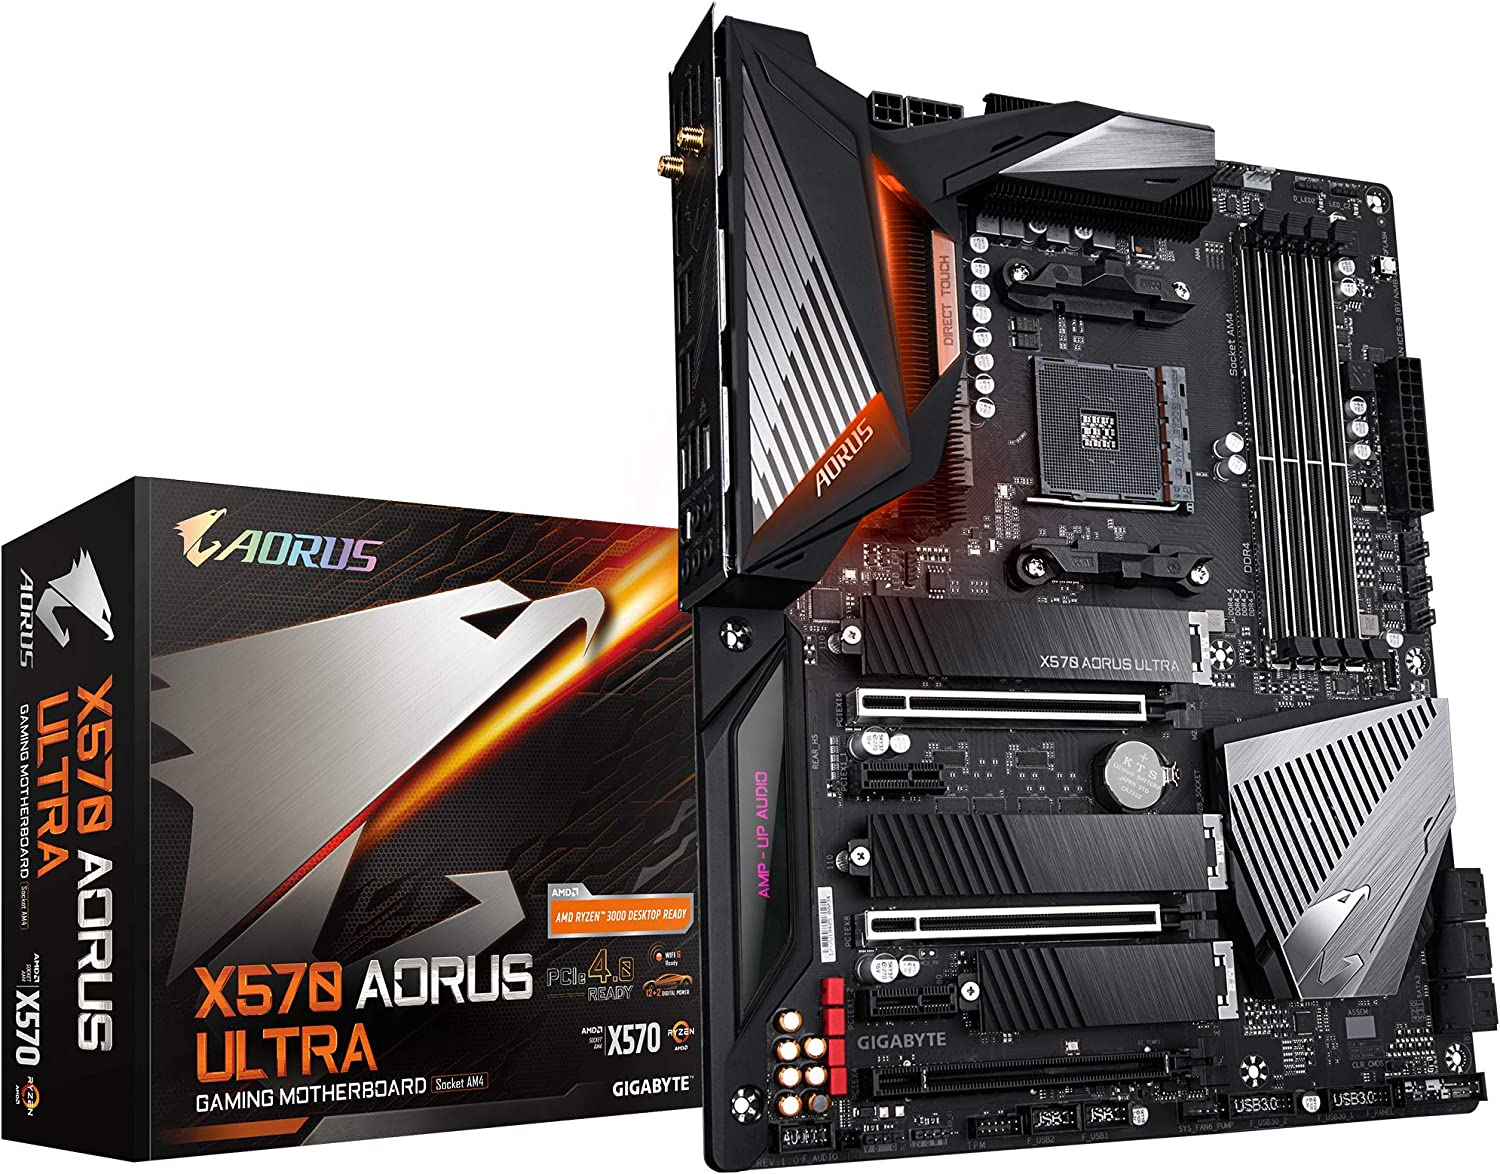 Gigabyte X570 AORUS Ultra (AMD Ryzen 3000/X570/ATX/PCIe4.0/DDR4/USB3.1/Realtek ALC1220-Vb/Fins-Array Heatsink/RGB Fusion 2.0/3xM.2 Thermal Guard/Gaming Motherboard)